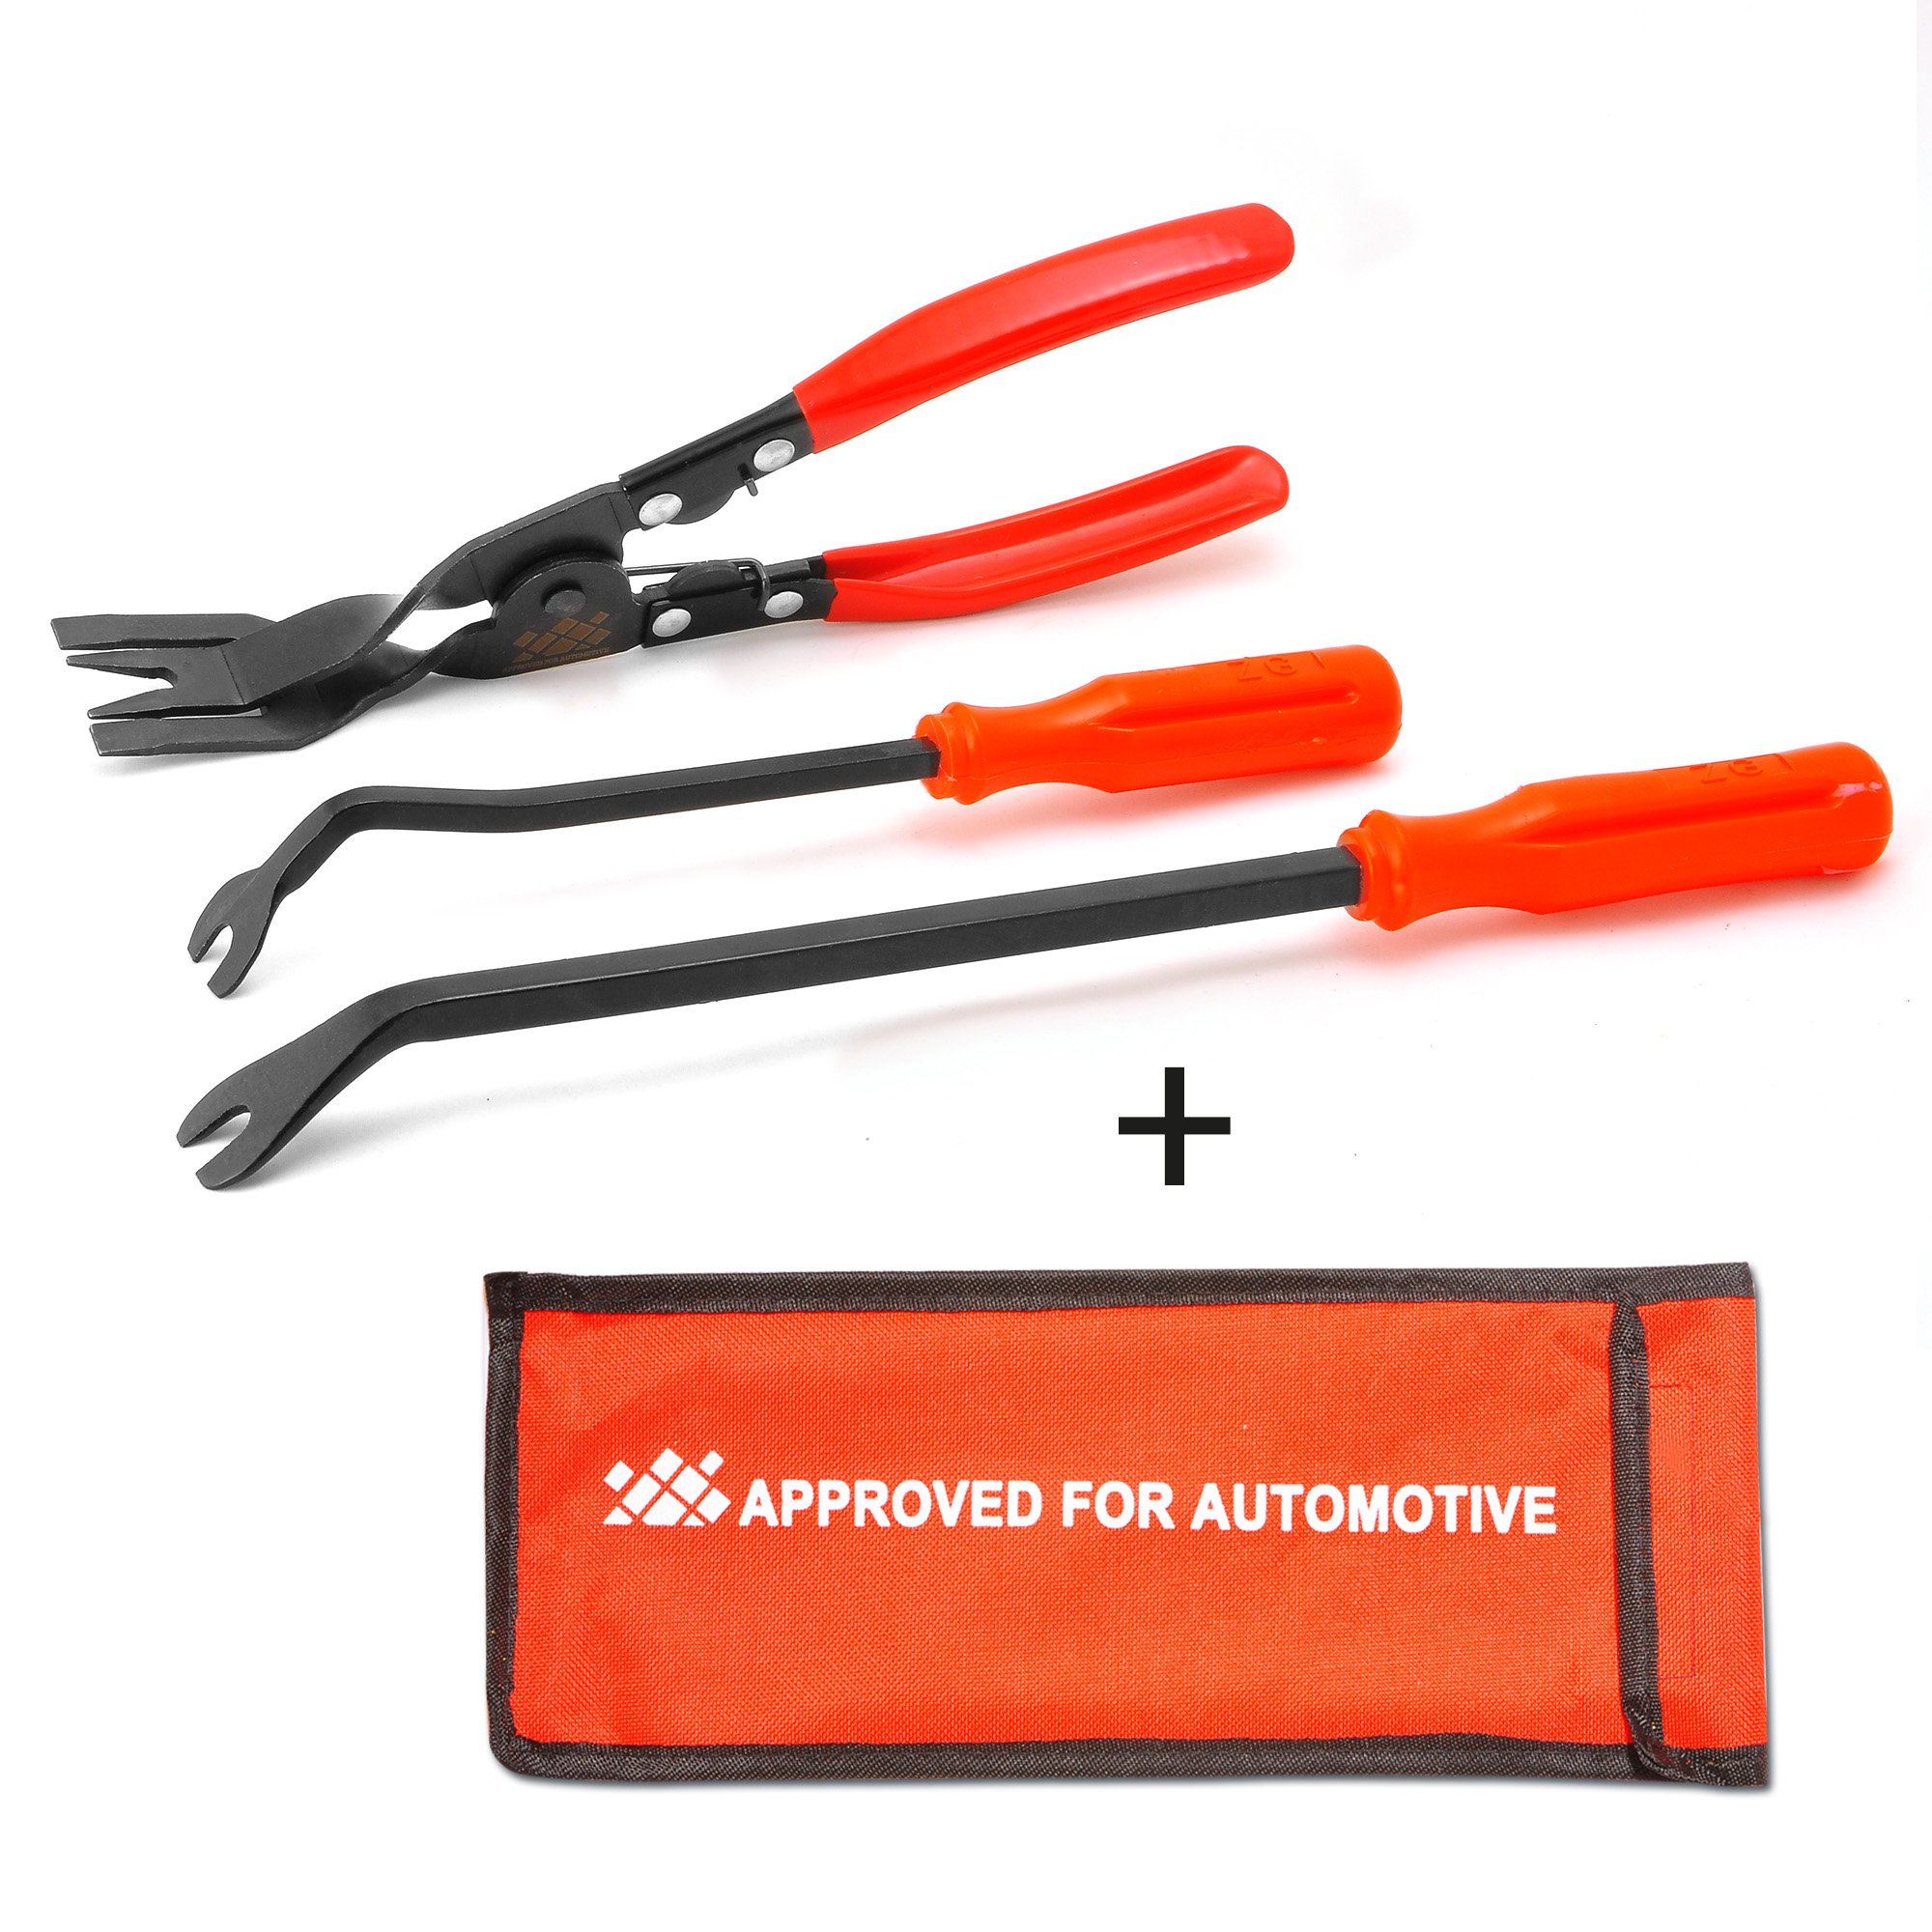 Approved for Automotive AFA [3 Pcs] Clip Plier Set & Fastener Remover - The Most Essential Combo Repair Kit